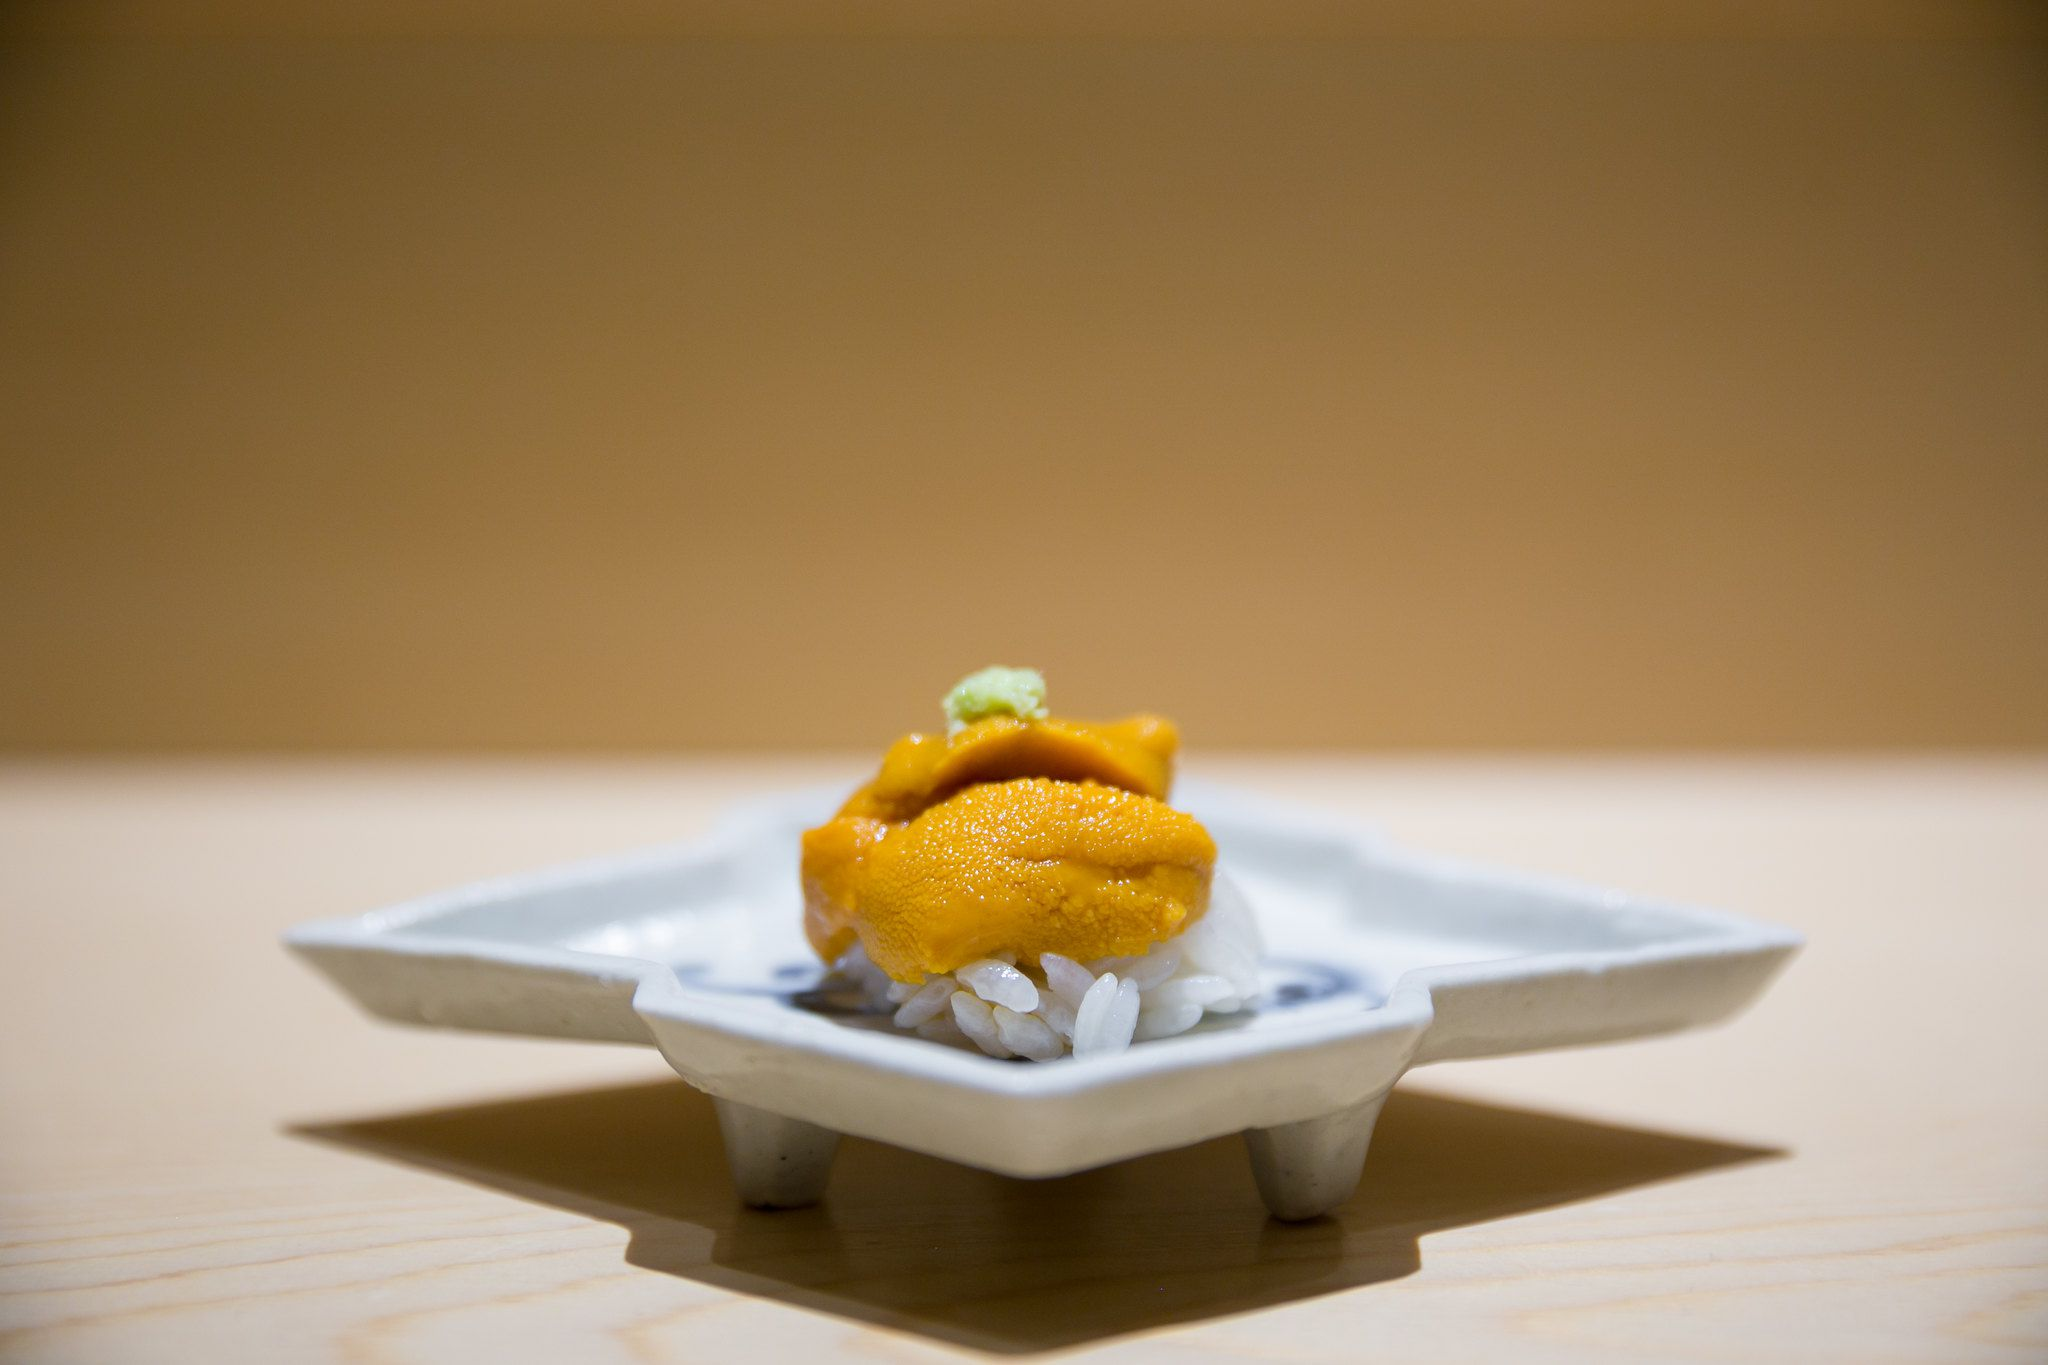 sea urchin over rice on a white plate